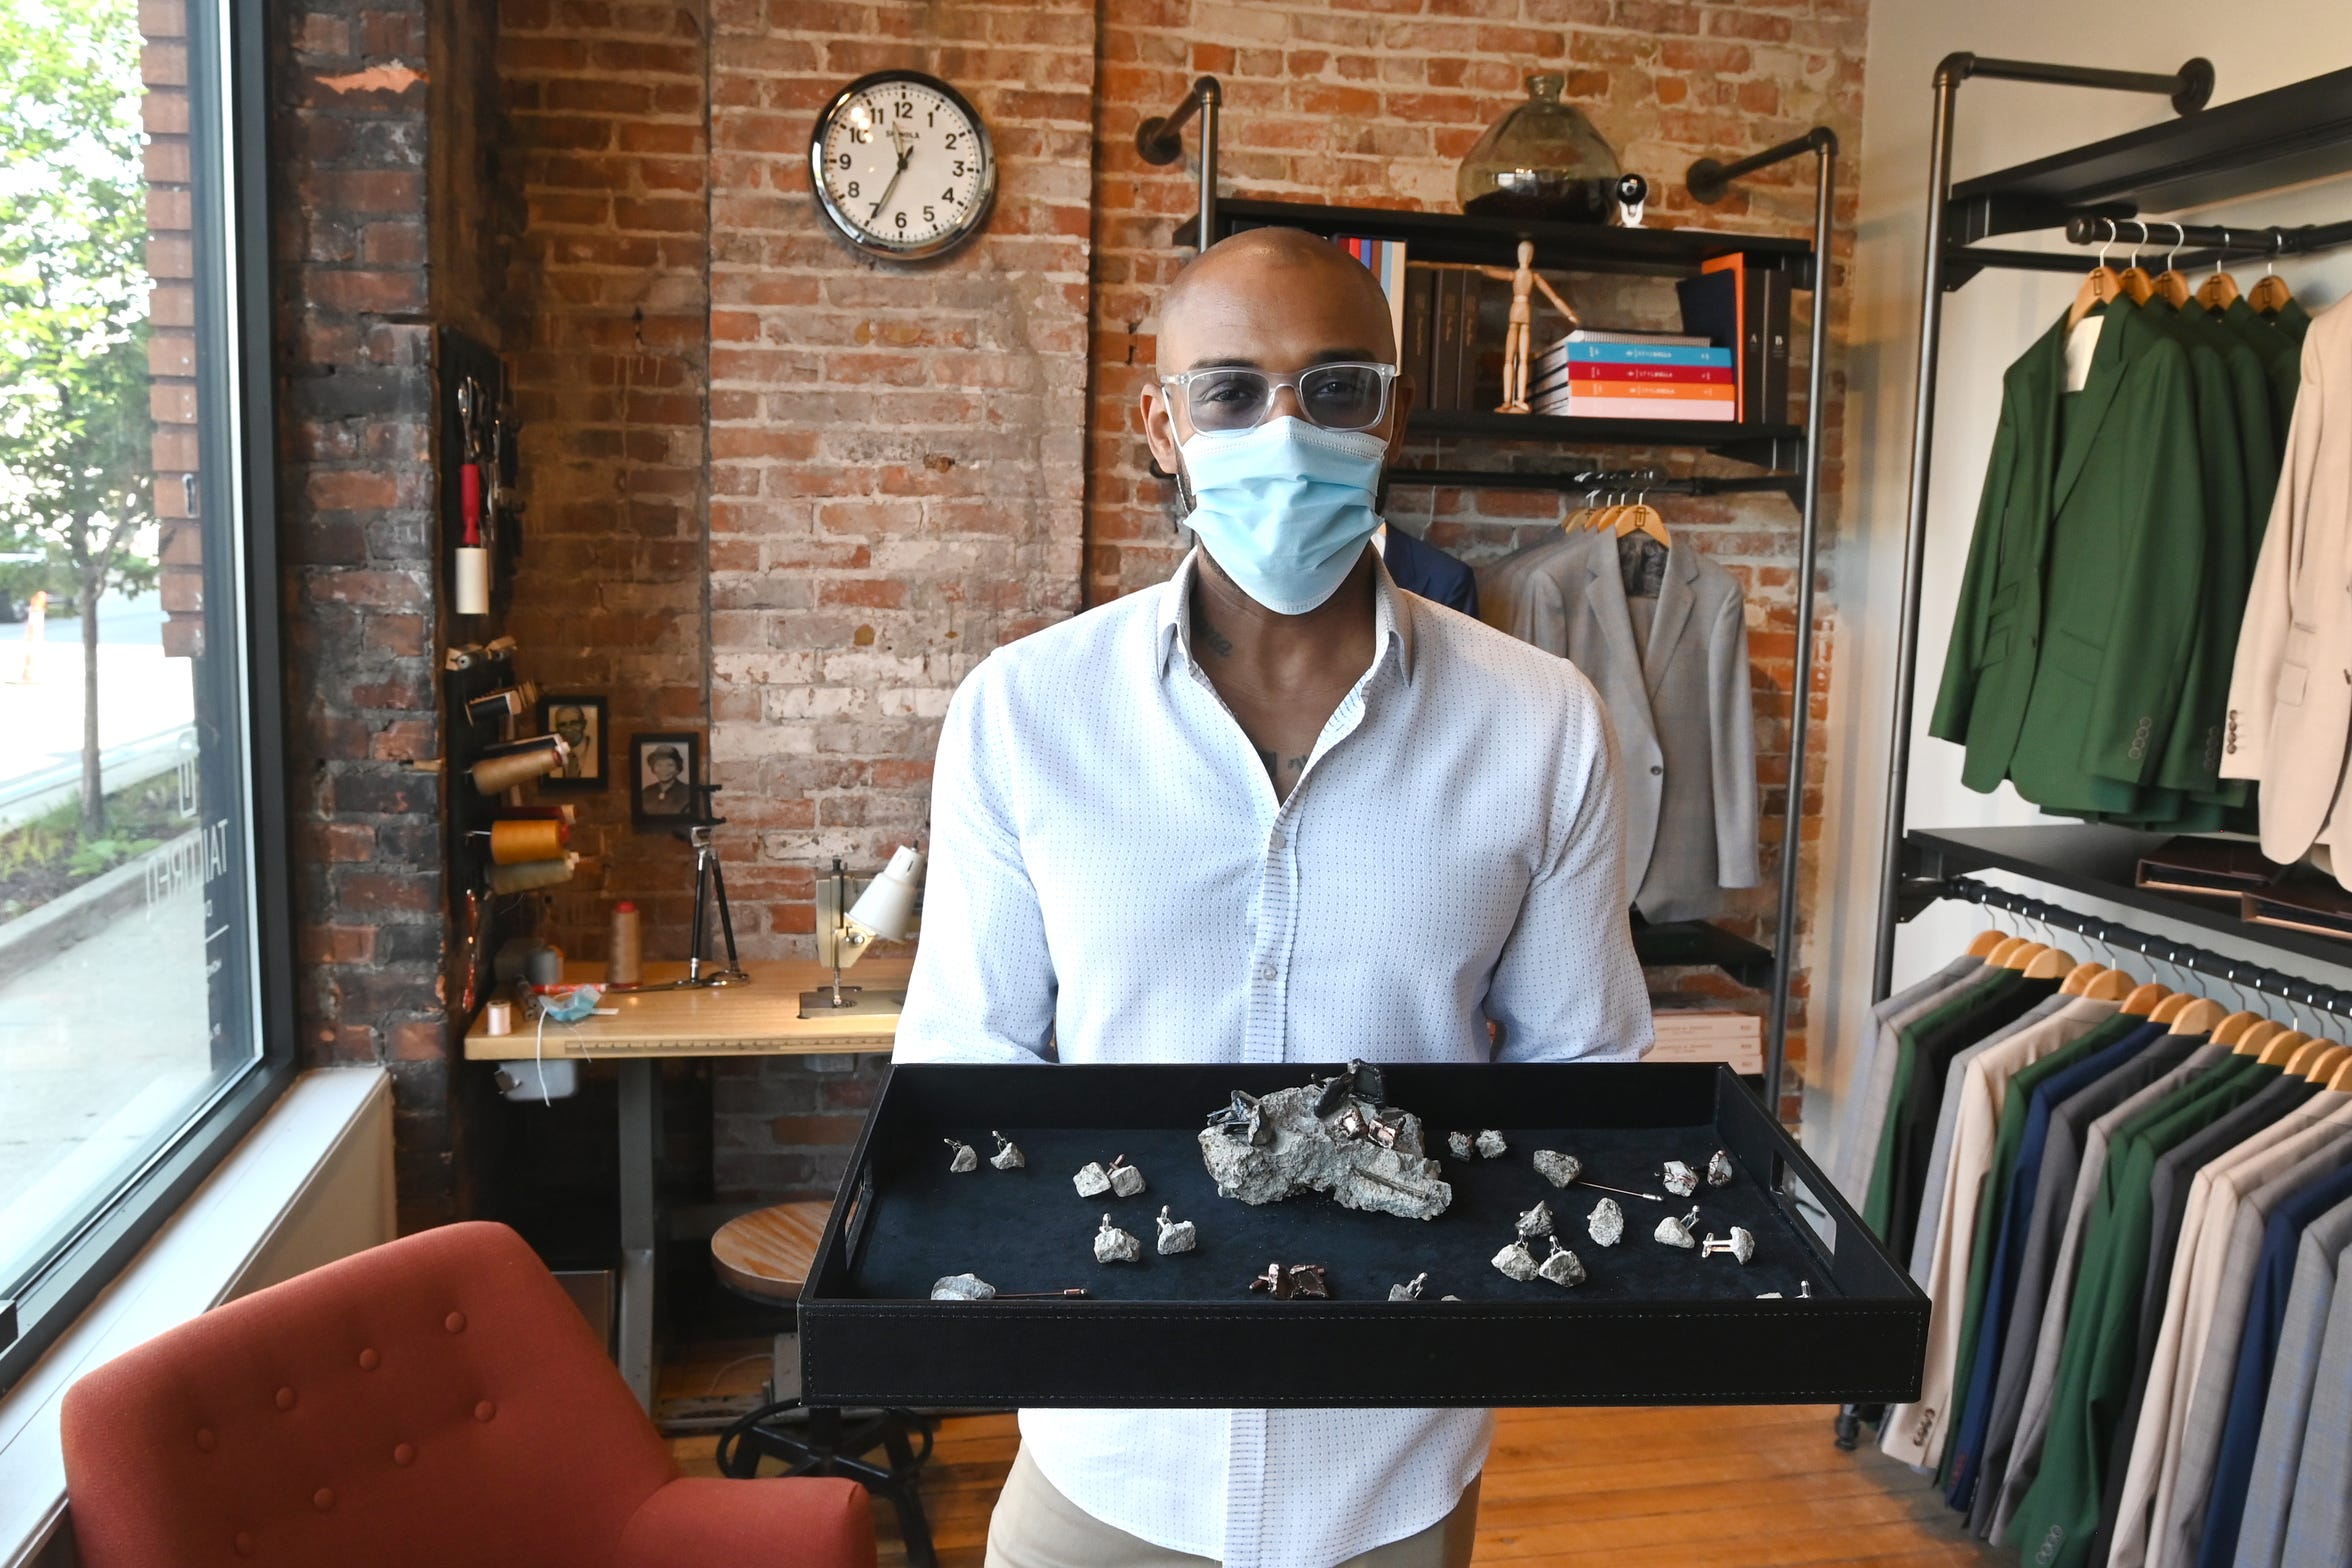 Warick Richardson, owner of Tailored Detroit, shows the commissioned cufflinks and lapel pins made from the concrete and broken glass from chunks from a thwarted burglary attempt at his Eastern Market clothing shop.